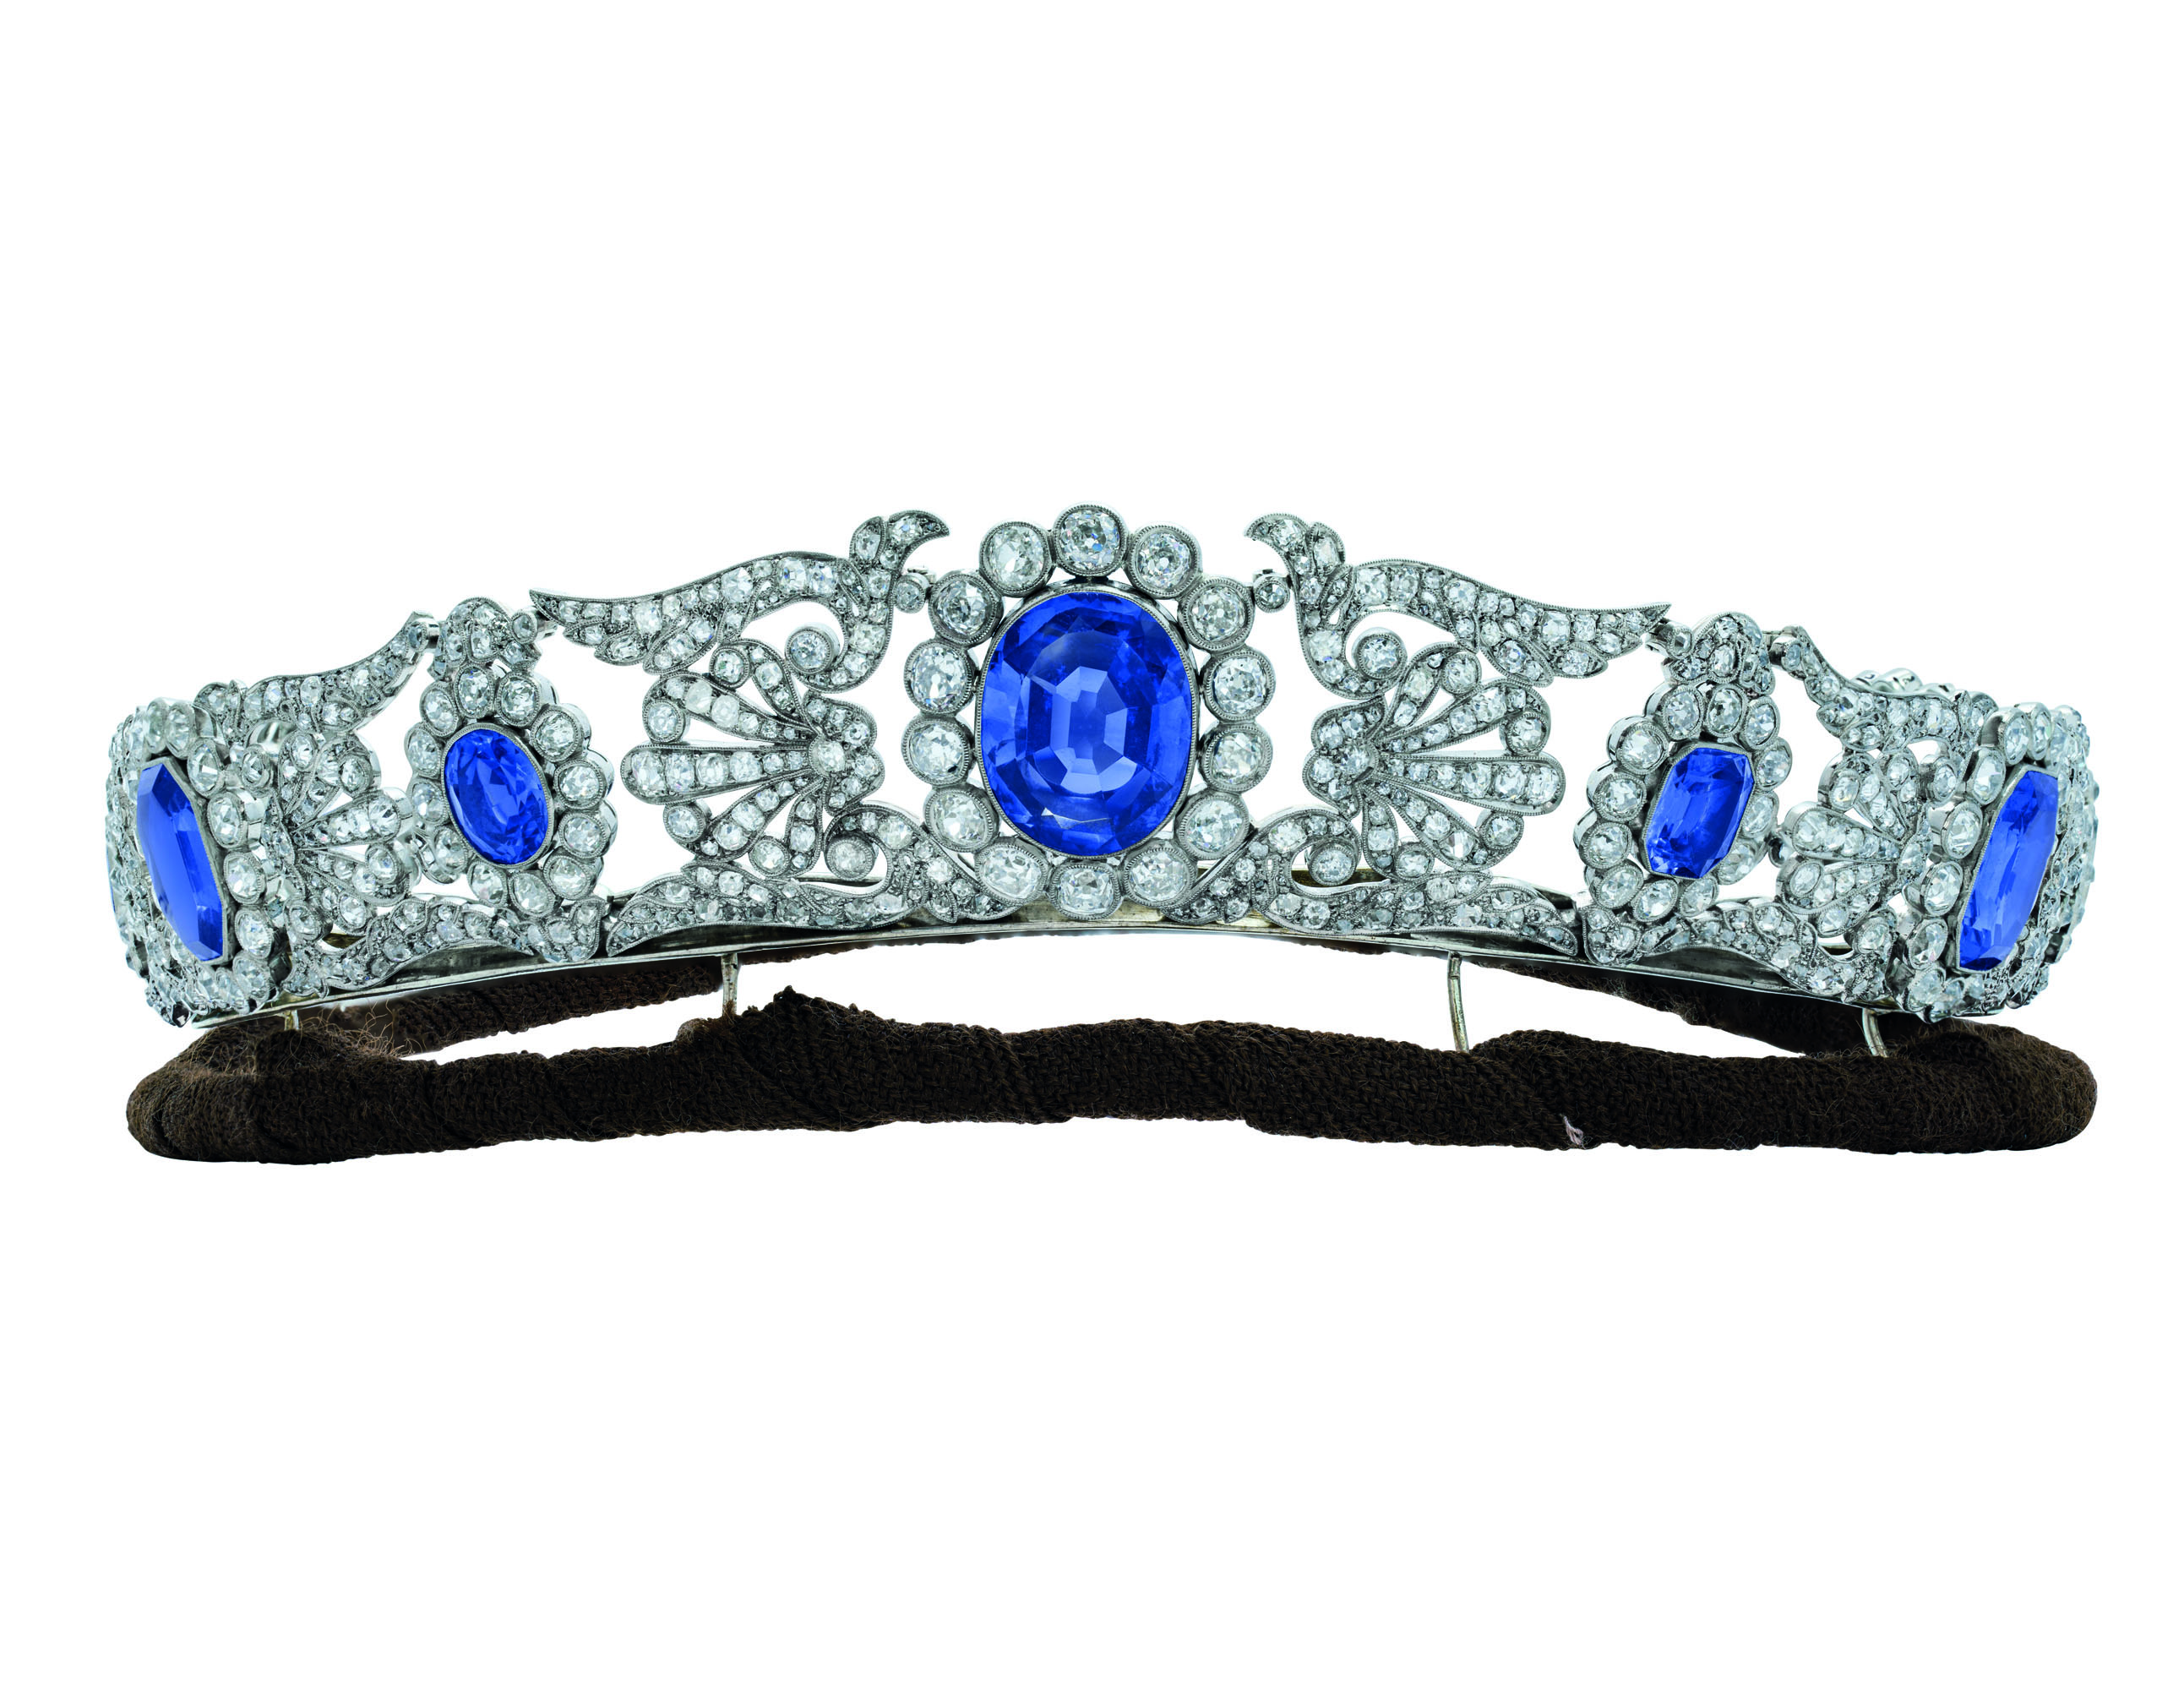 EARLY 19TH CENTURY IMPORTANT SAPPHIRE AND DIAMOND TIARA